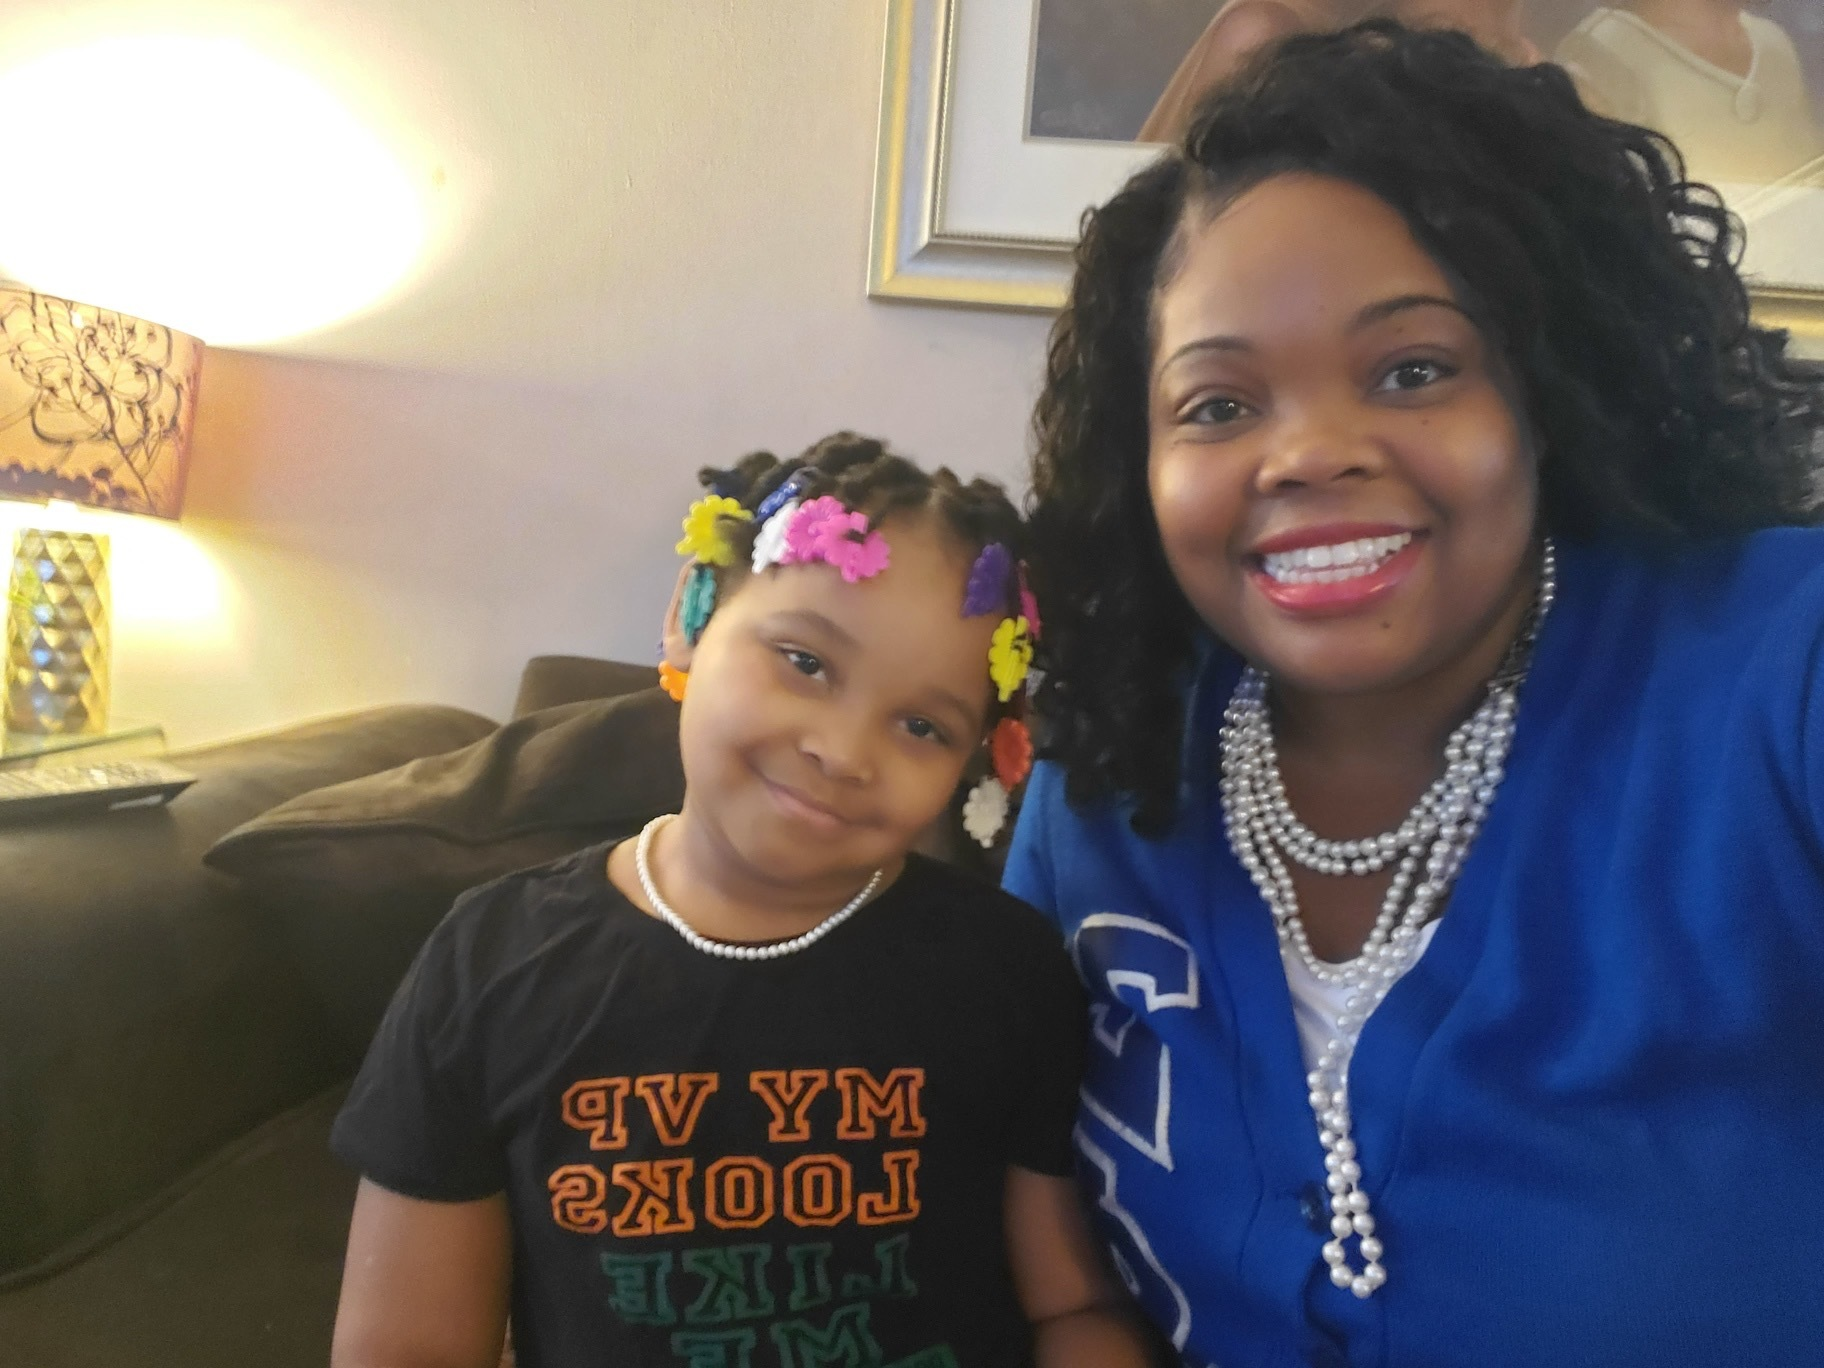 Councilmember Katherine Gilmore-Richardson (right) wears sorority blue and pearls while sitting next to her 6-year-old daughter, Katherine